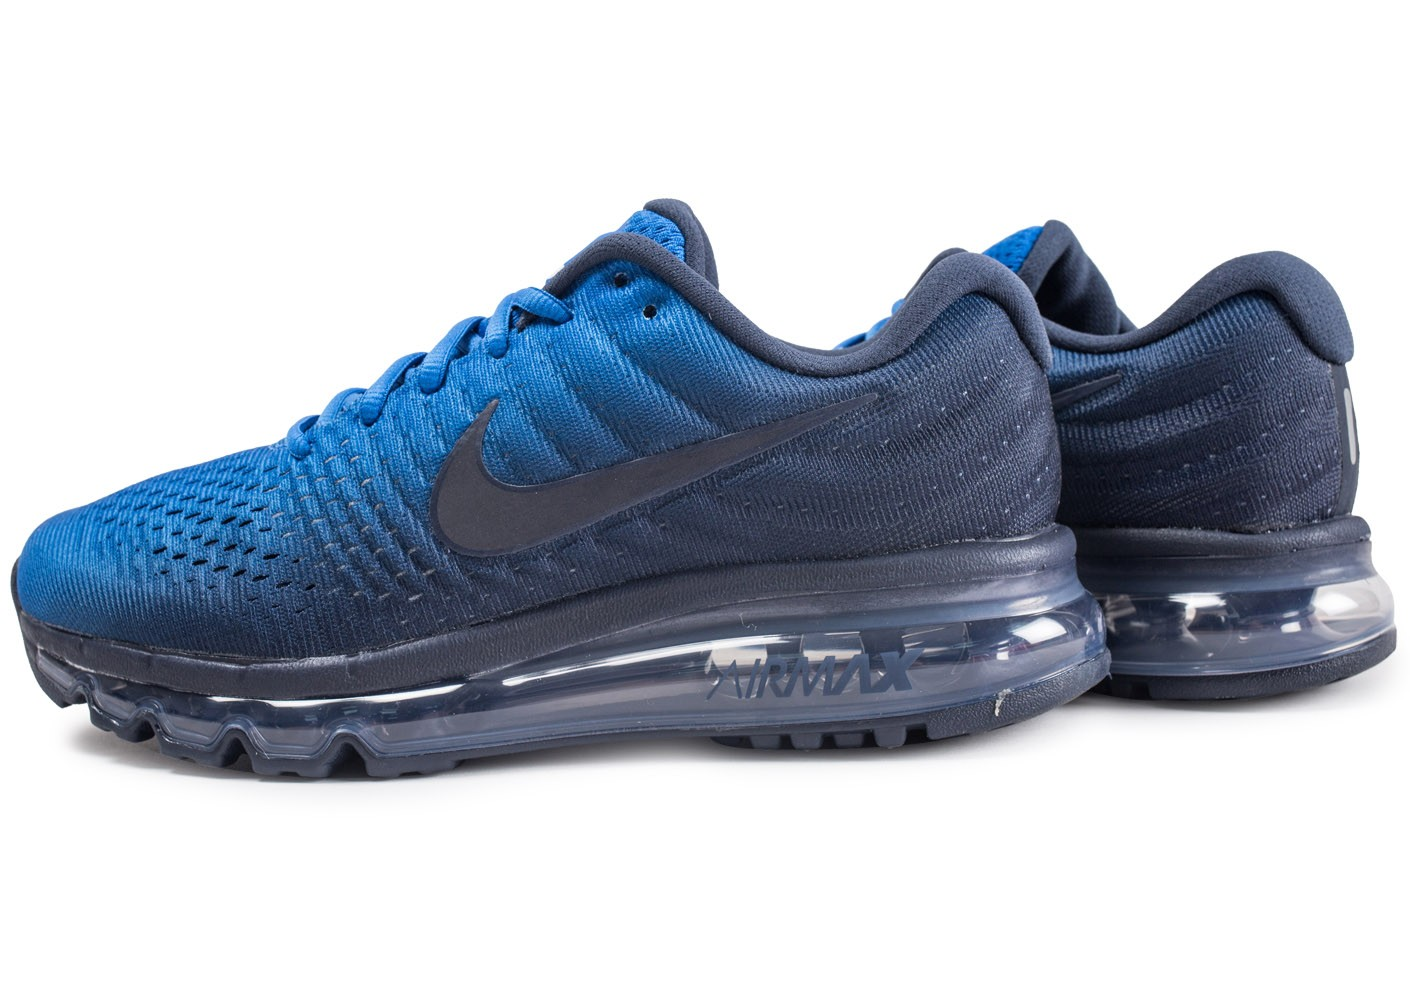 Nike Air Max 2017 obsidian blue Chaussures Baskets homme